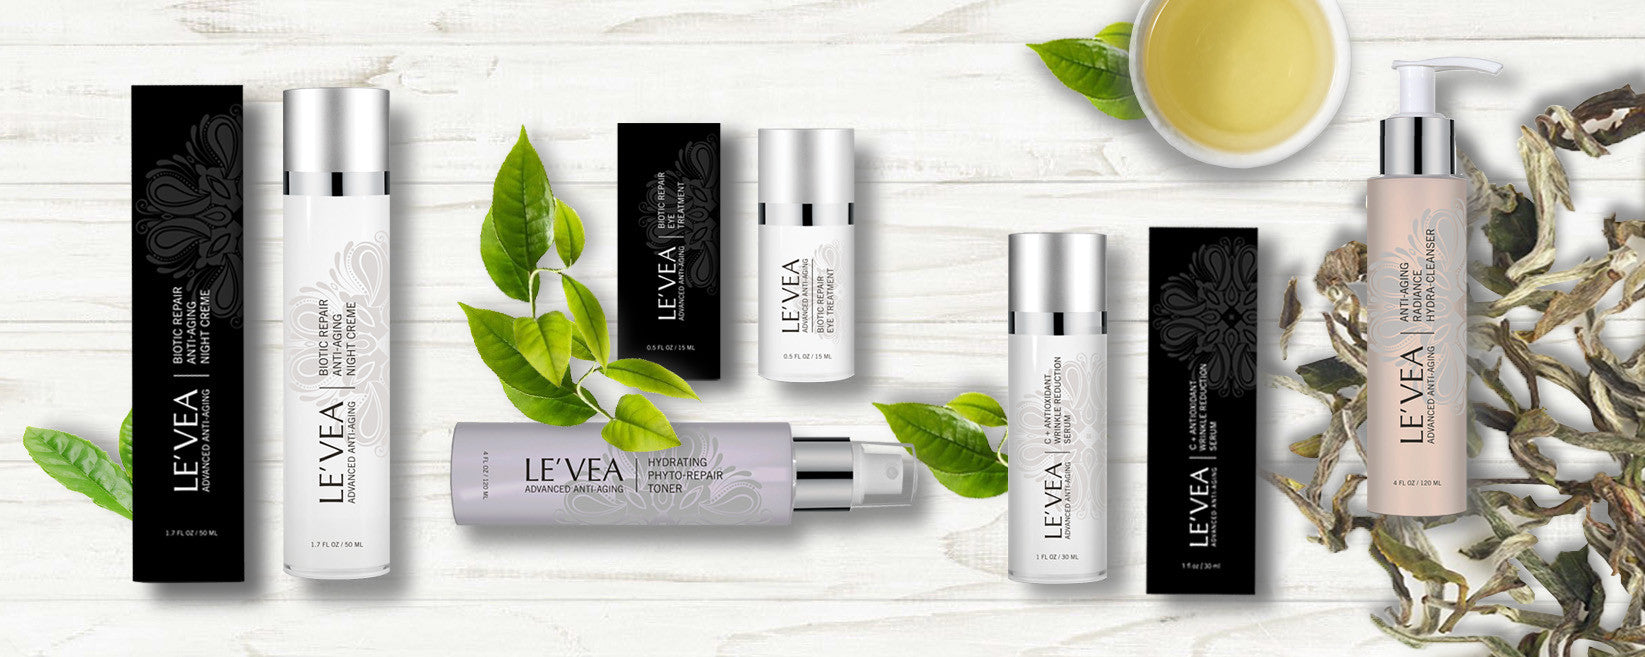 LE'VEA Anti-Aging Product Introduction